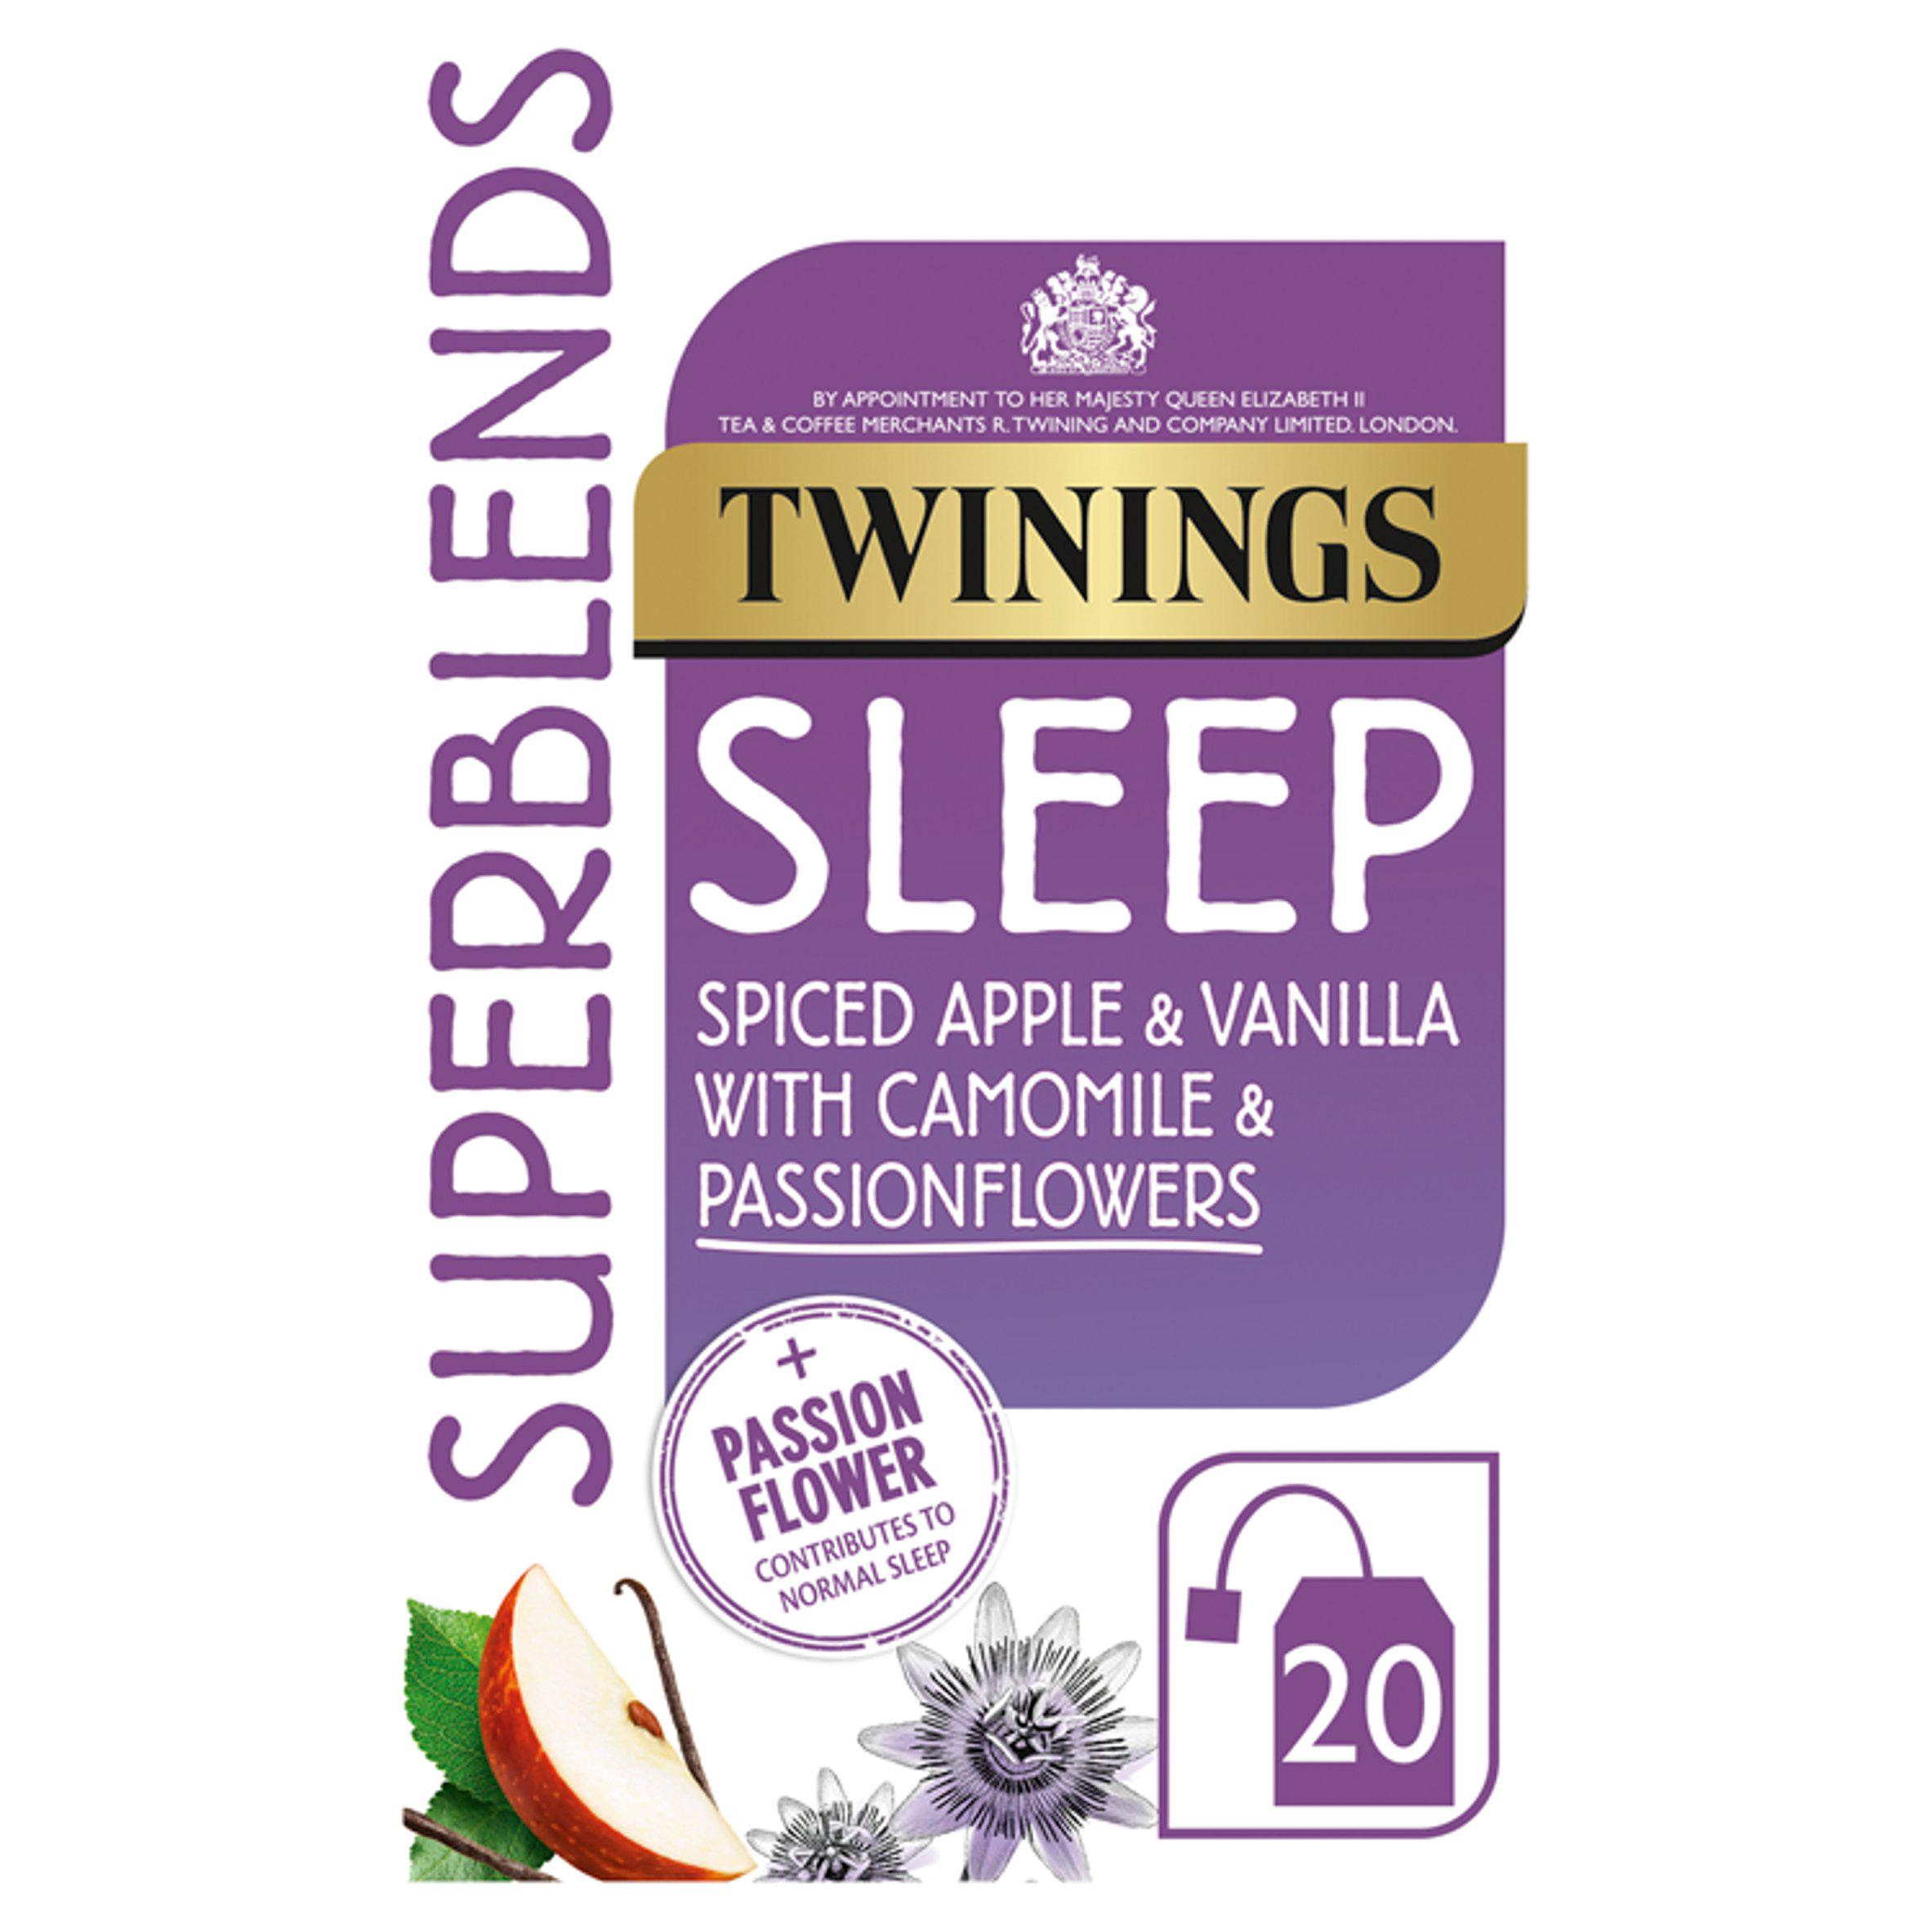 Twinings Superblends Sleep Tea is only £1.35 at Sainsbury's